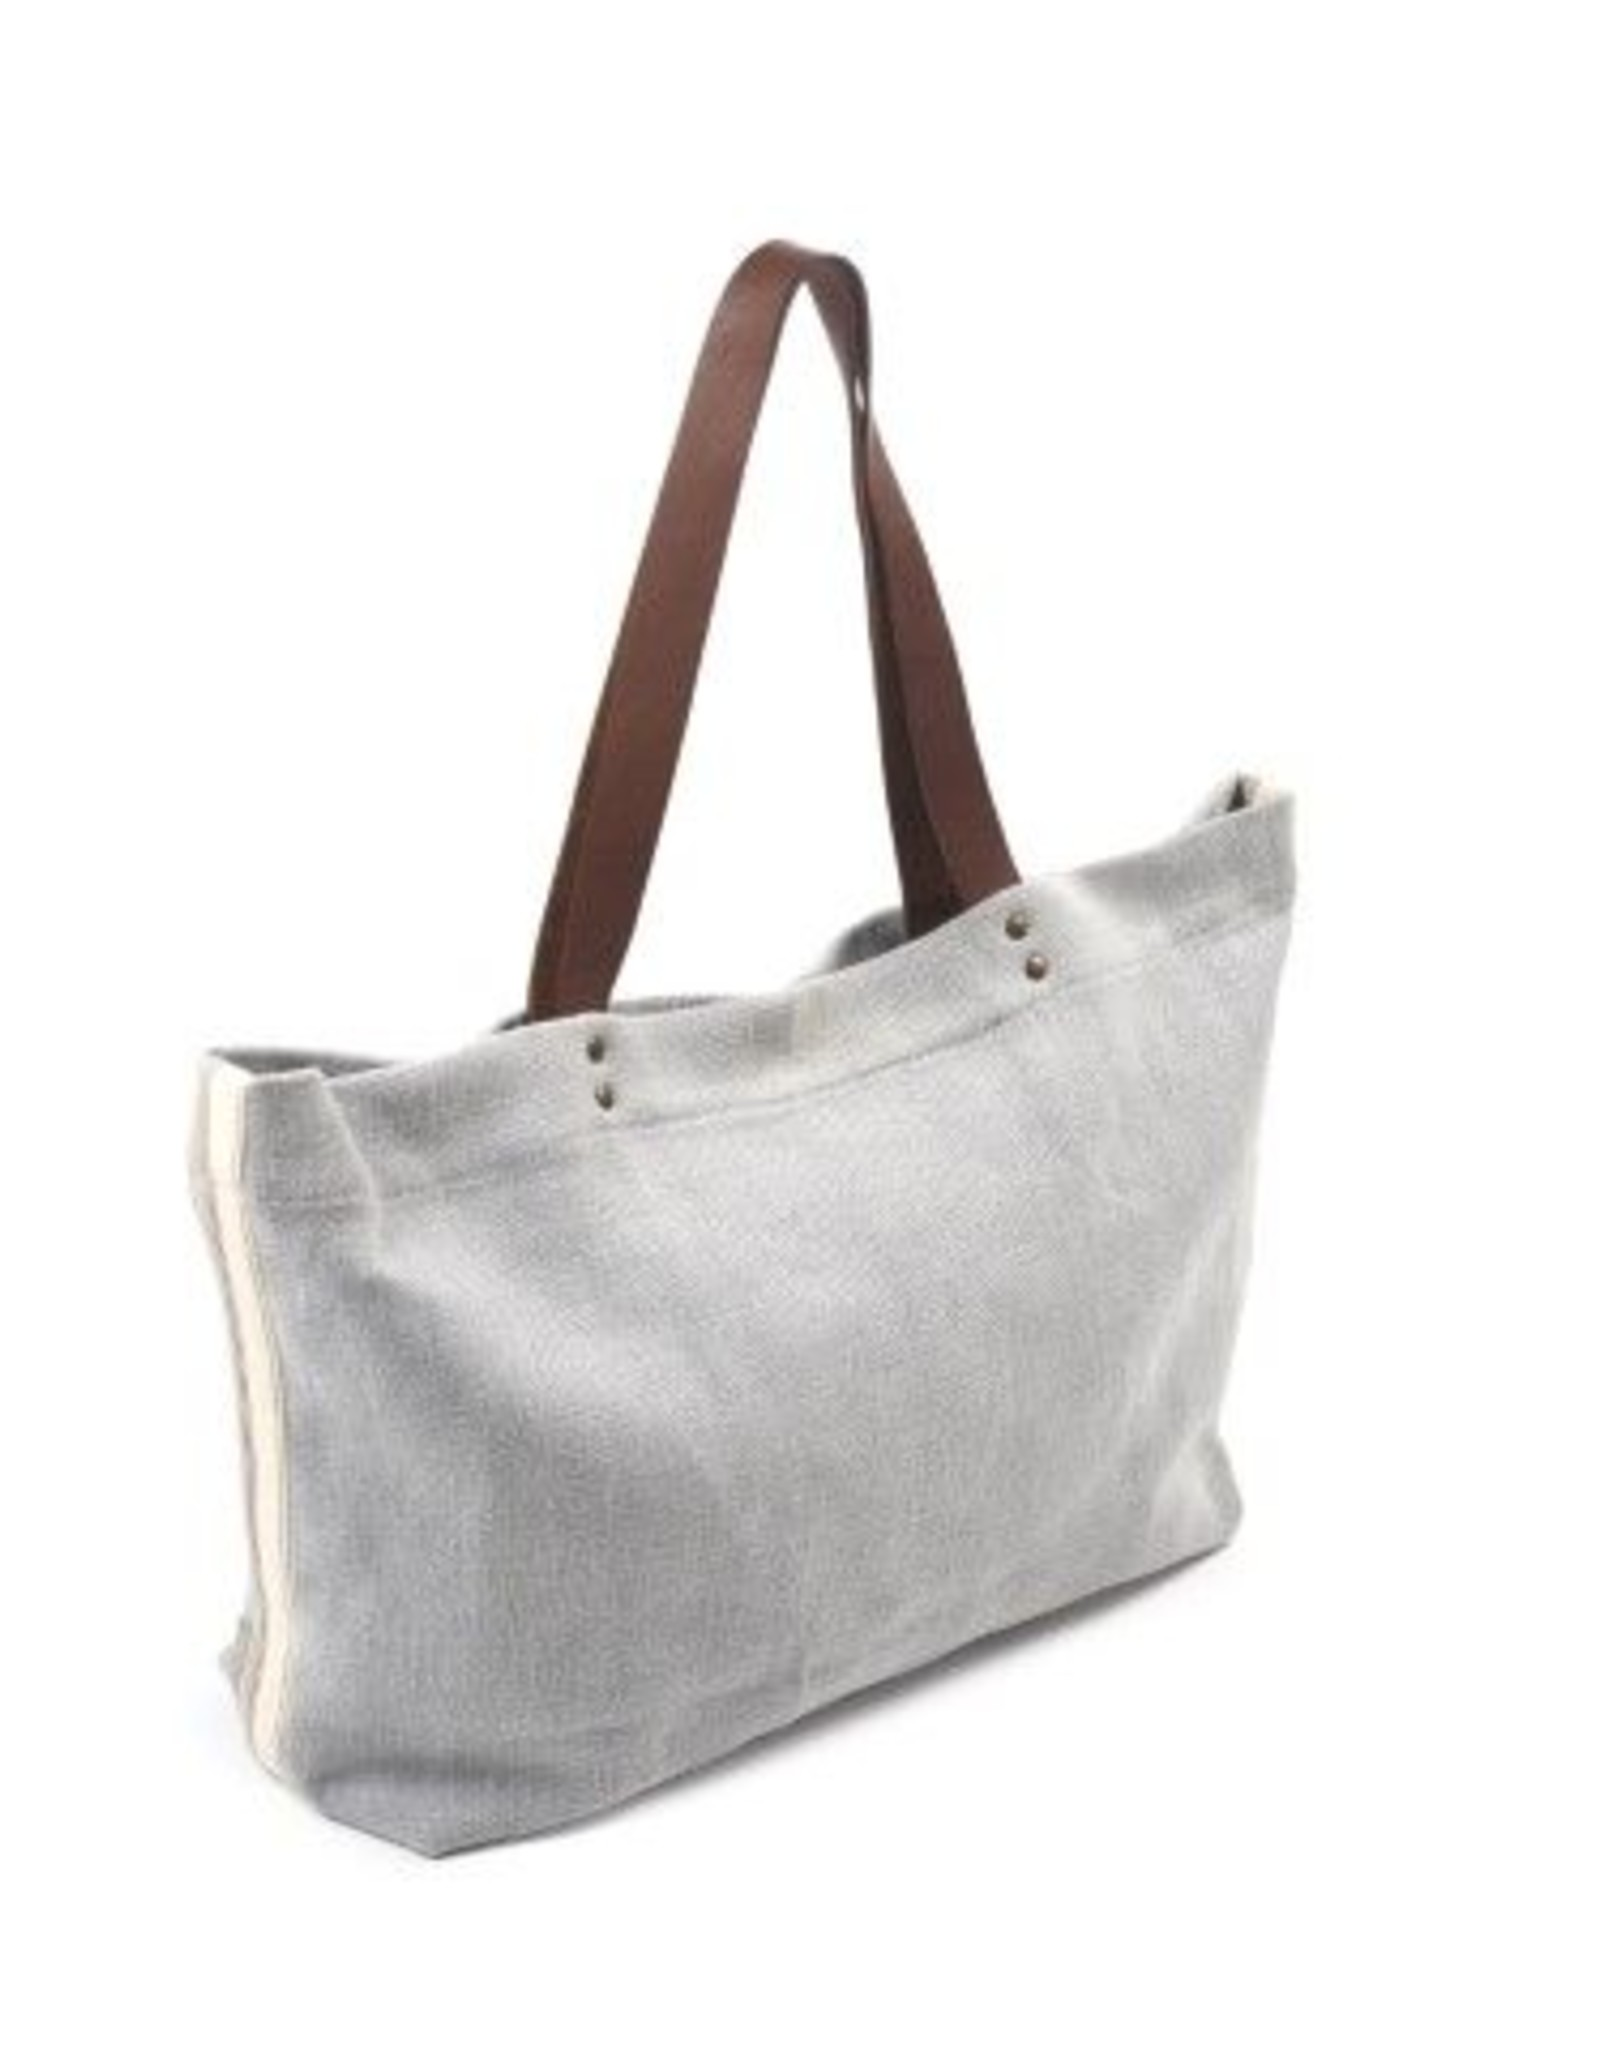 Libeco Home Corse Tote Bag - Ash